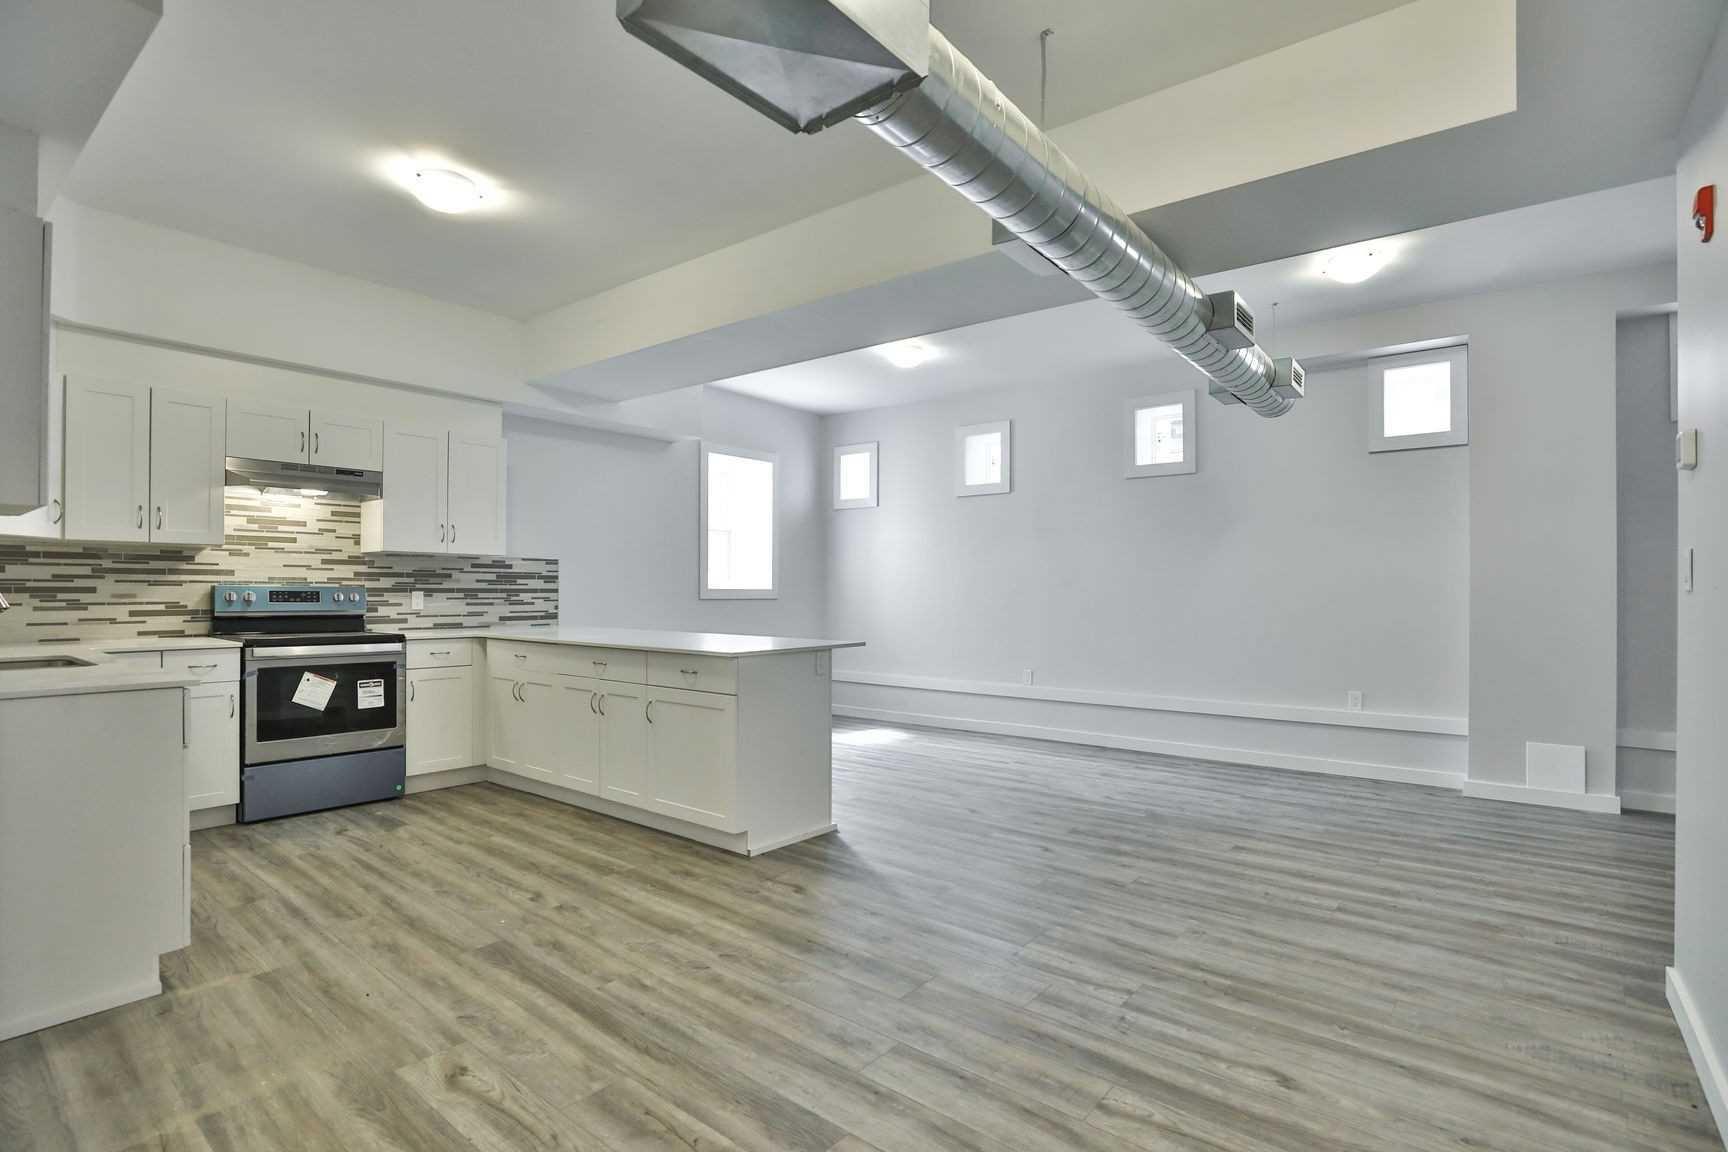 Multiplex For Lease In Hamilton , 2 Bedrooms Bedrooms, ,2 BathroomsBathrooms,Multiplex,For Lease,1,Caroline